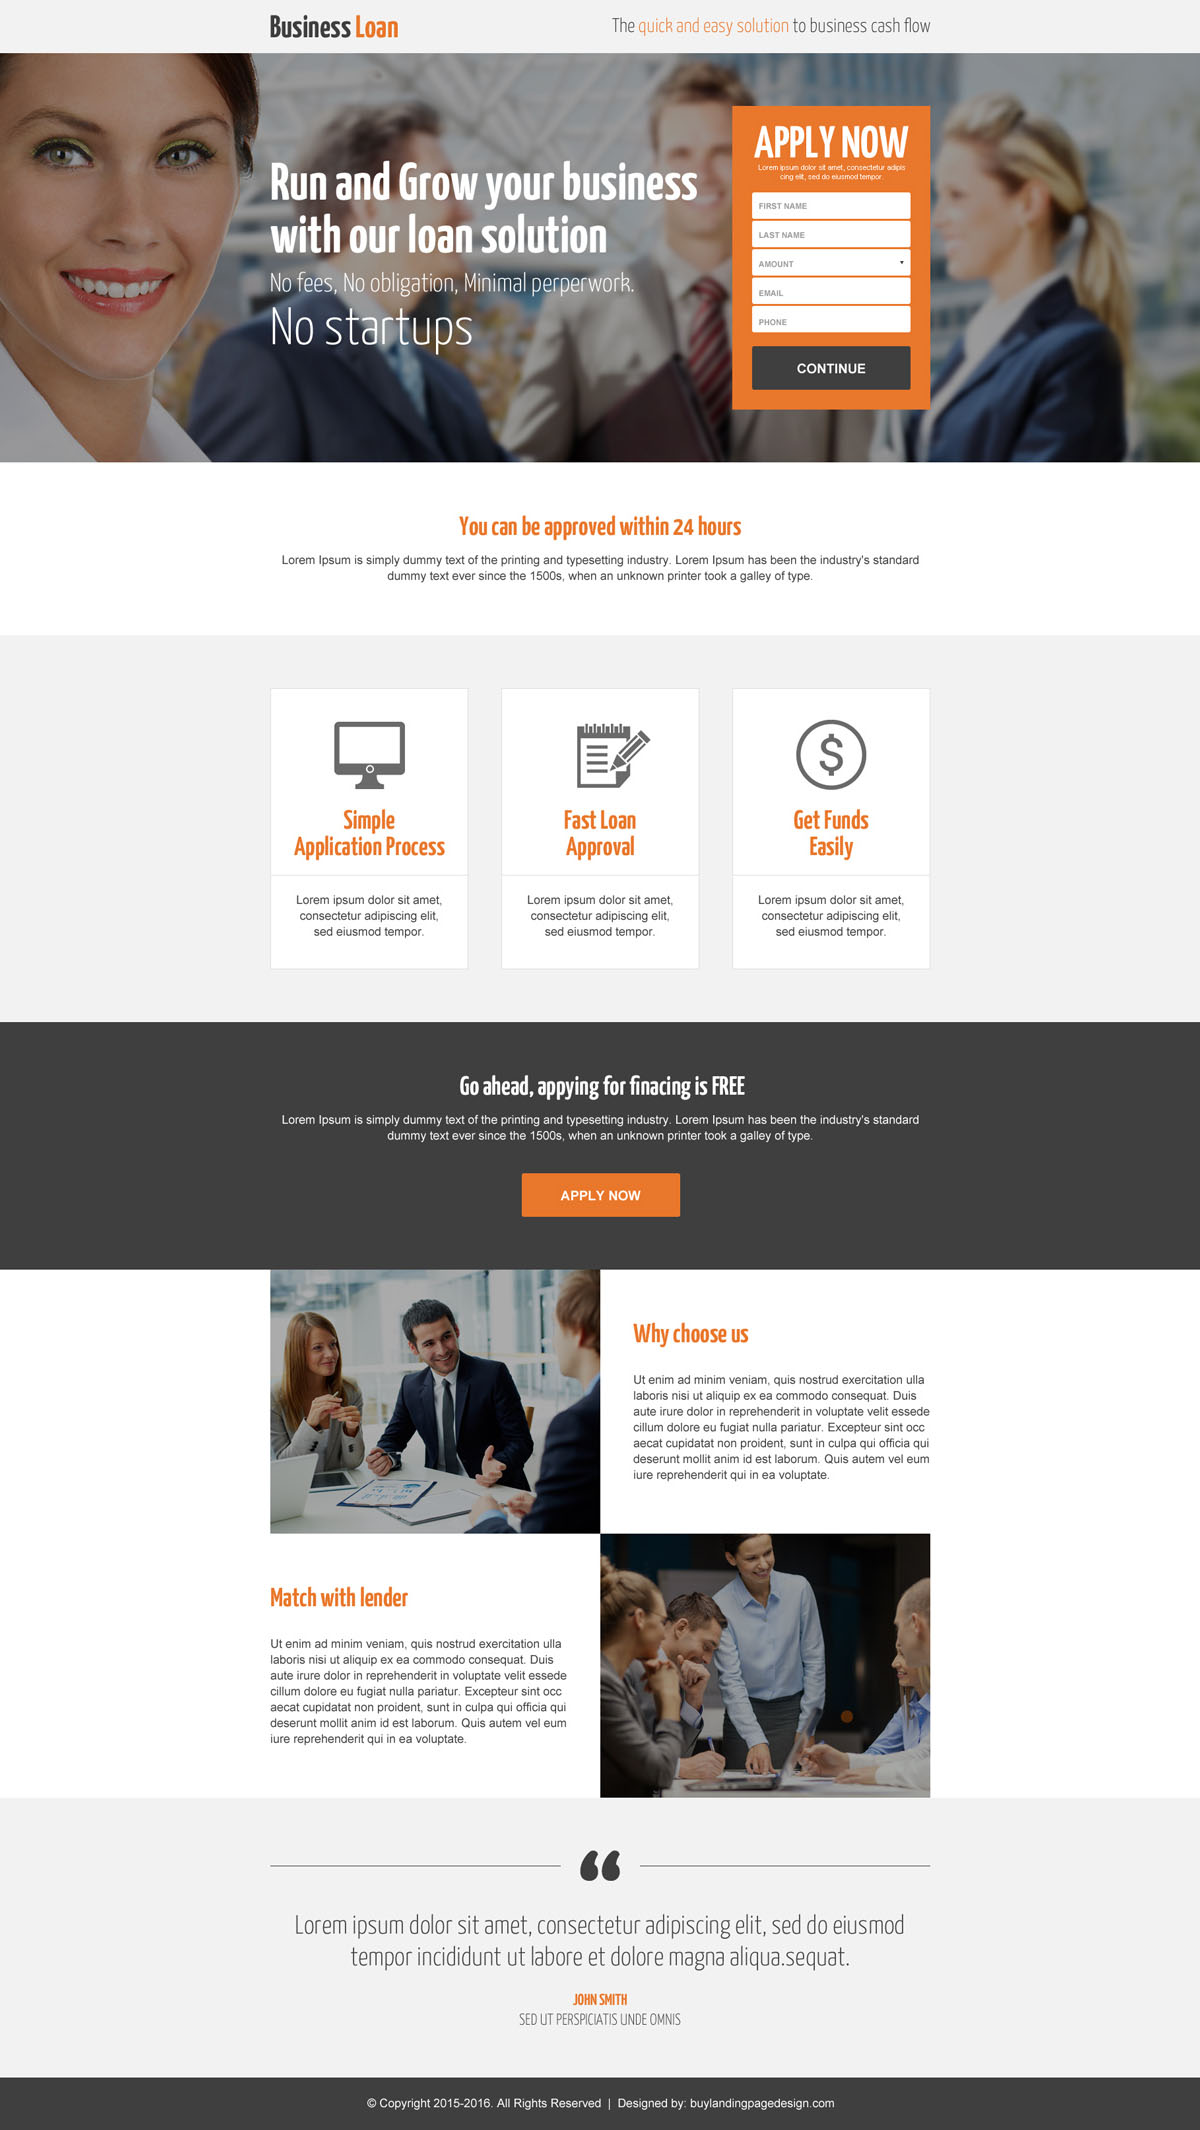 lead-generation-converting-business-loan-responsive-landing-page-design-001